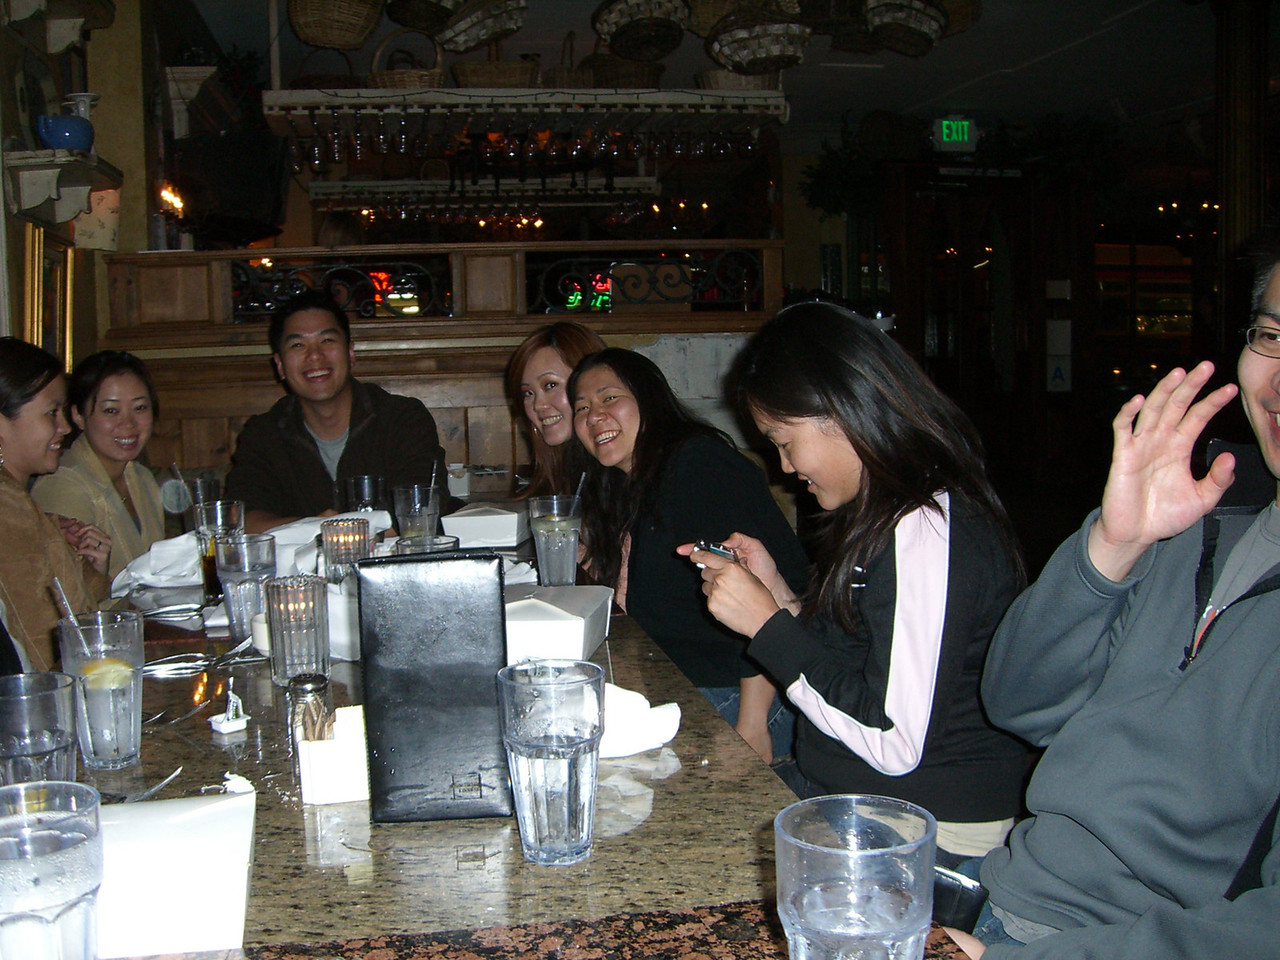 2006 05 05 Fri - Old EFC'ers dinner in LA - Cathy Huang, Julie & Johnny Chen, Maggie Yang, Angela Chen, Bernice Chen, Yu-tsun Cheng